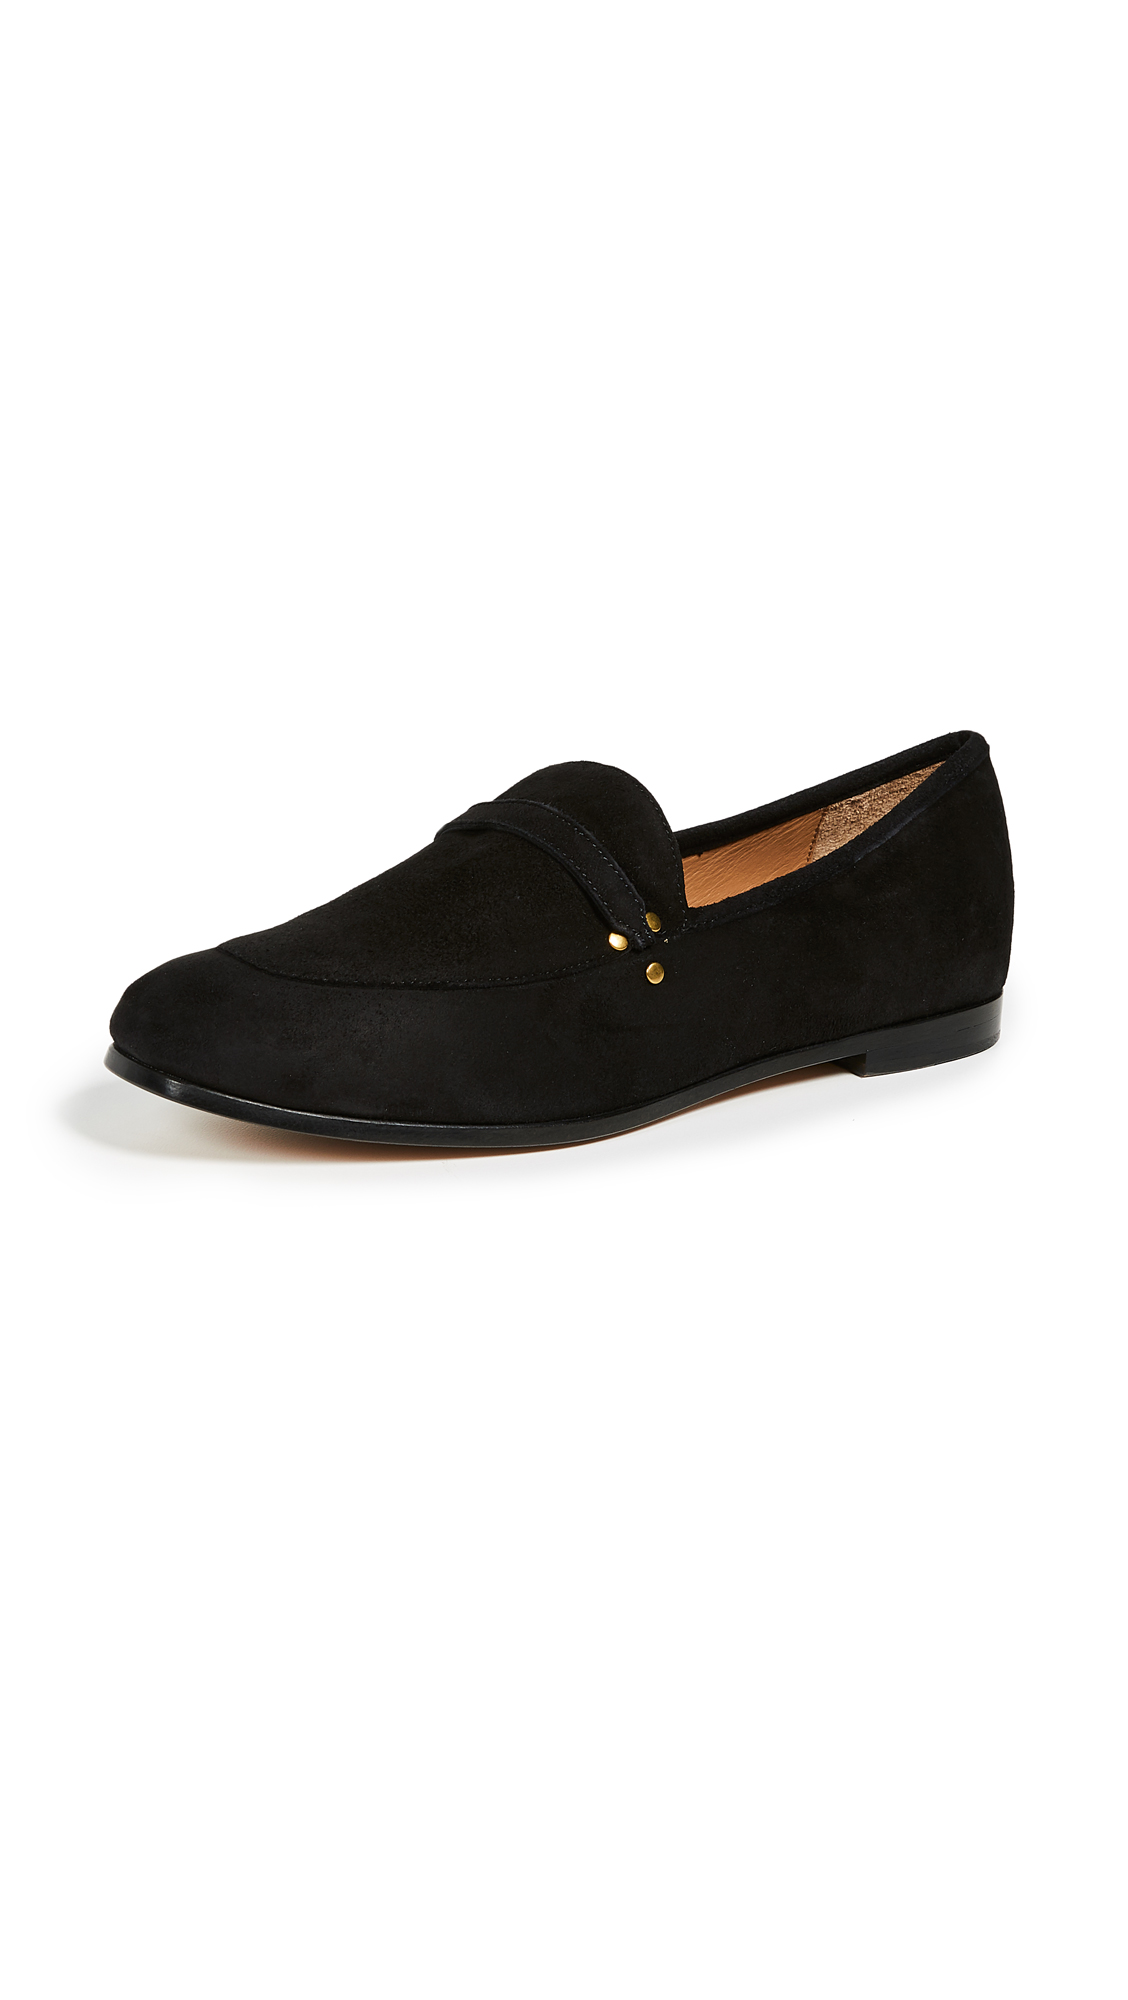 Jerome Dreyfuss Gabi Loafers - Velours Noir